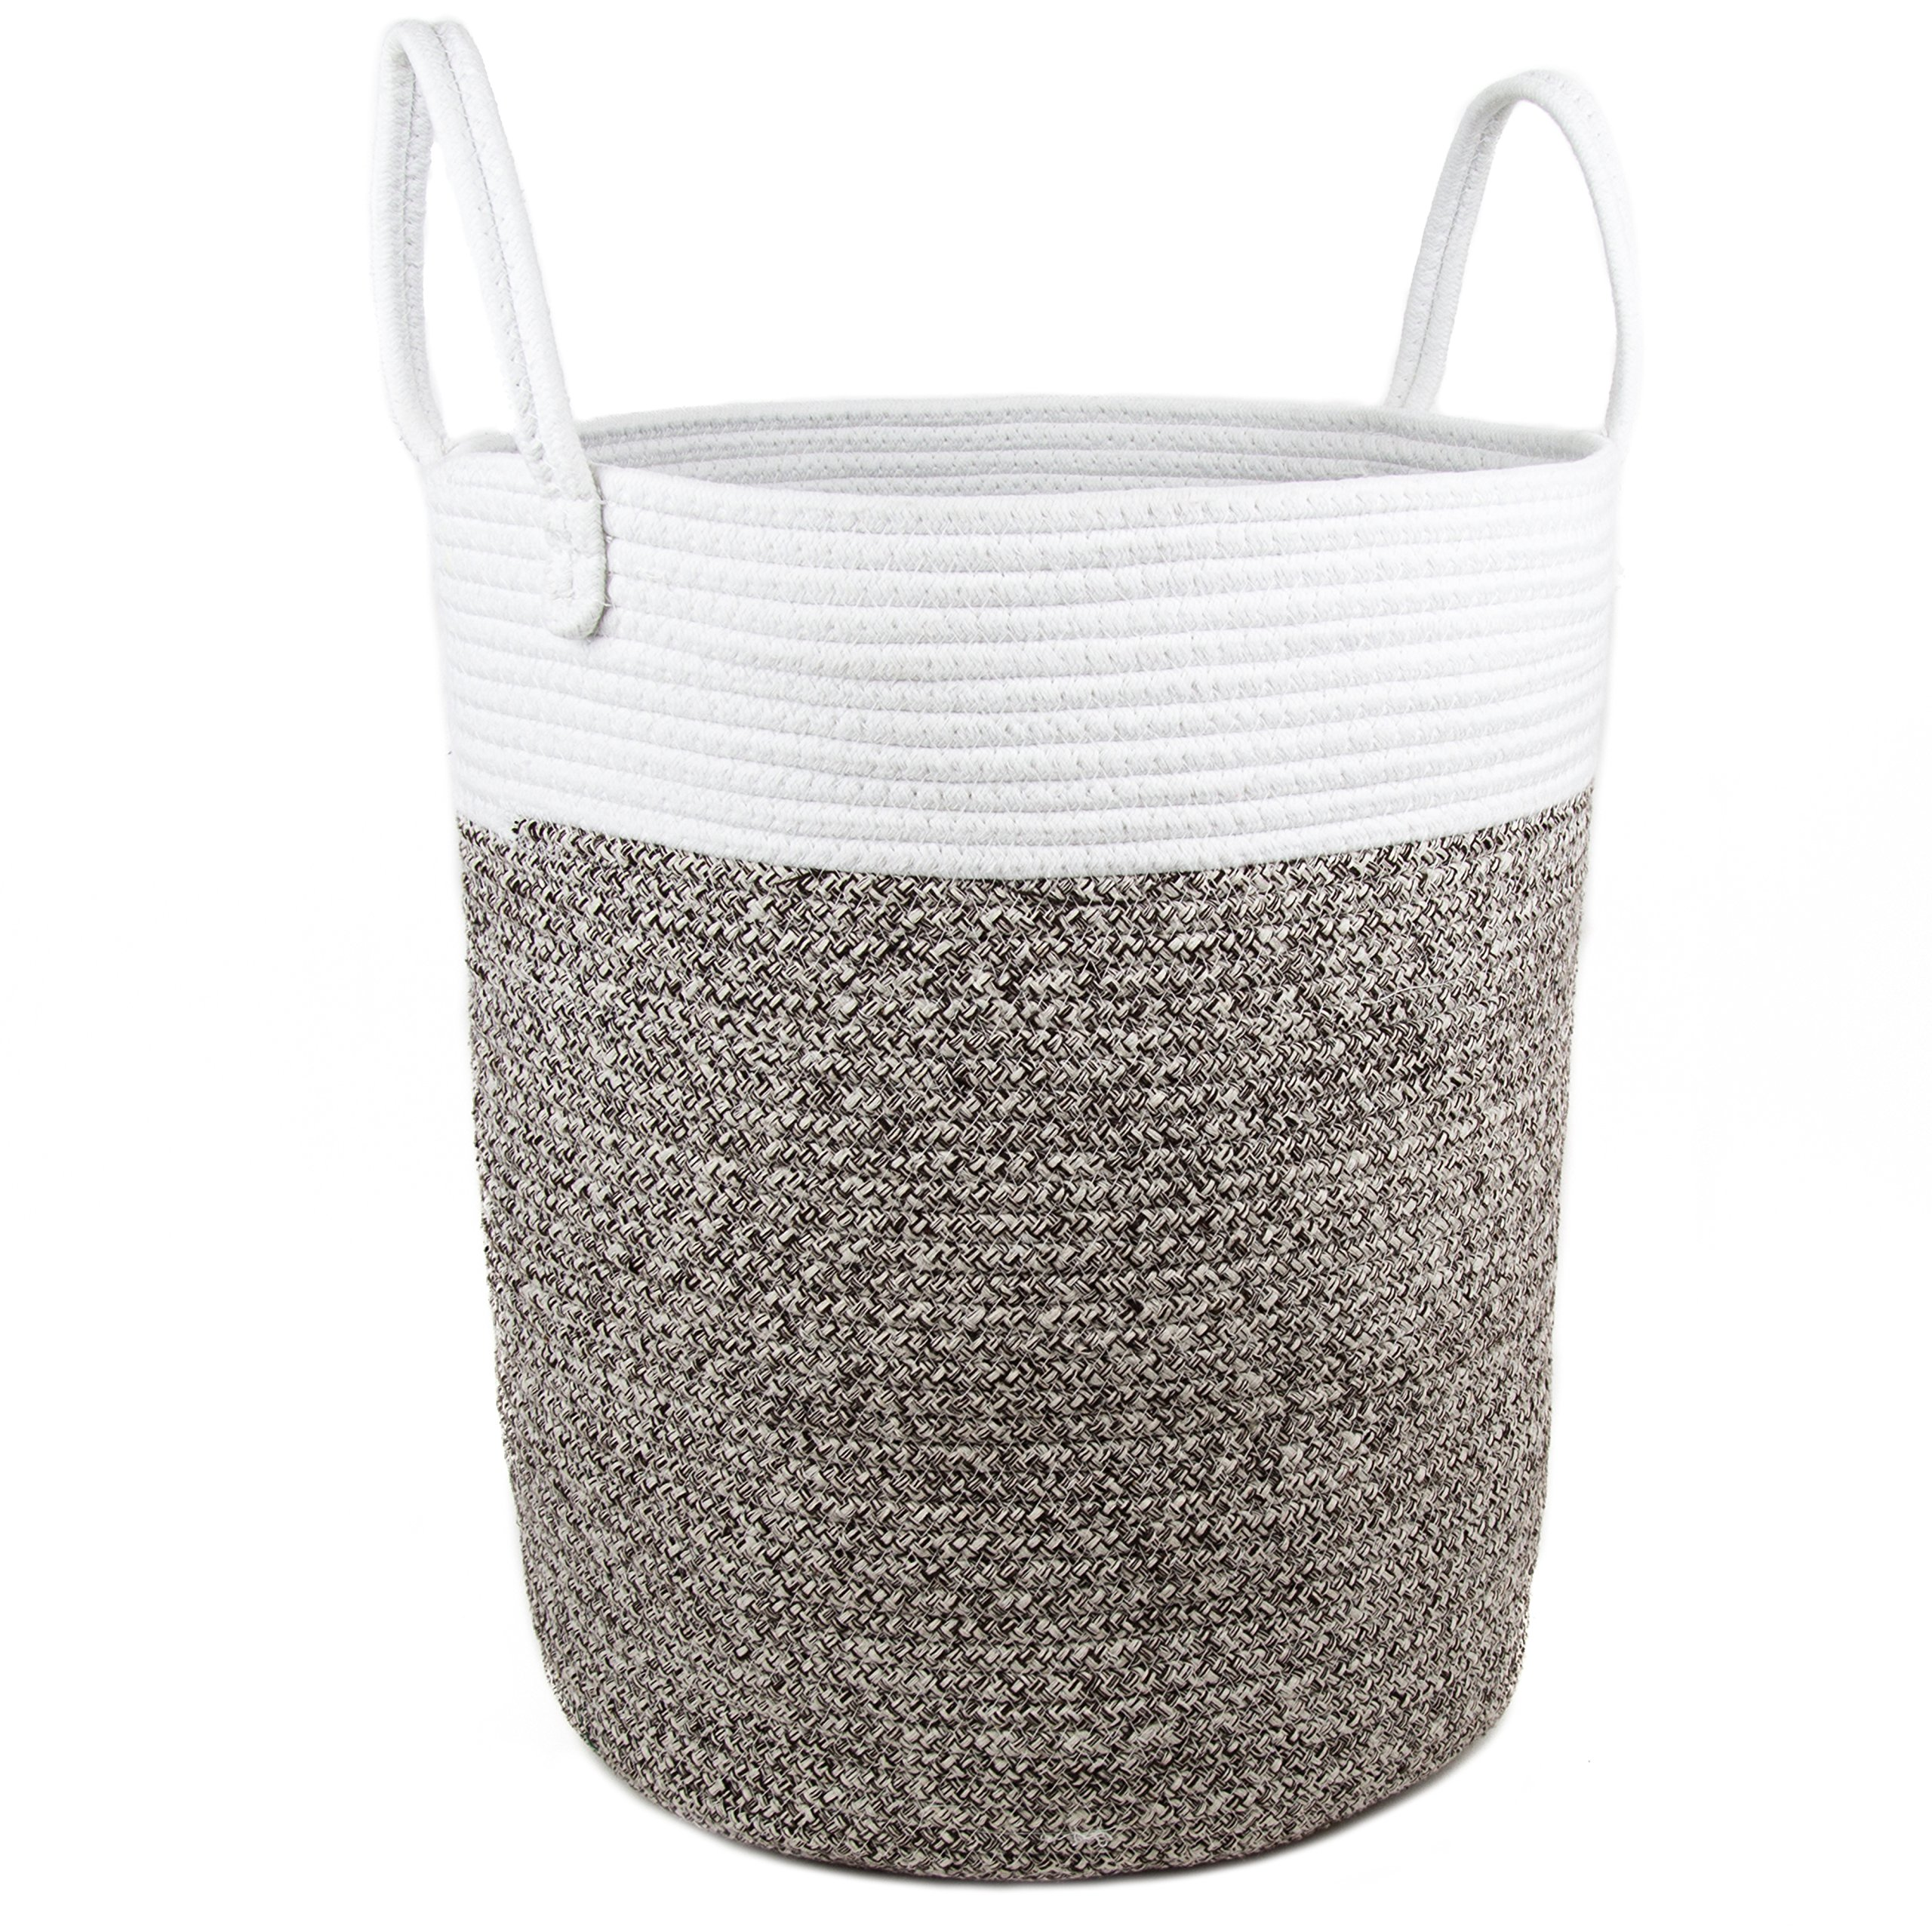 Comfy Cottage Large Rope Basket - 17'' x 15'' Woven Basket with Handle, Tall Round Basket, Big Cotton Woven Basket | White + Brown